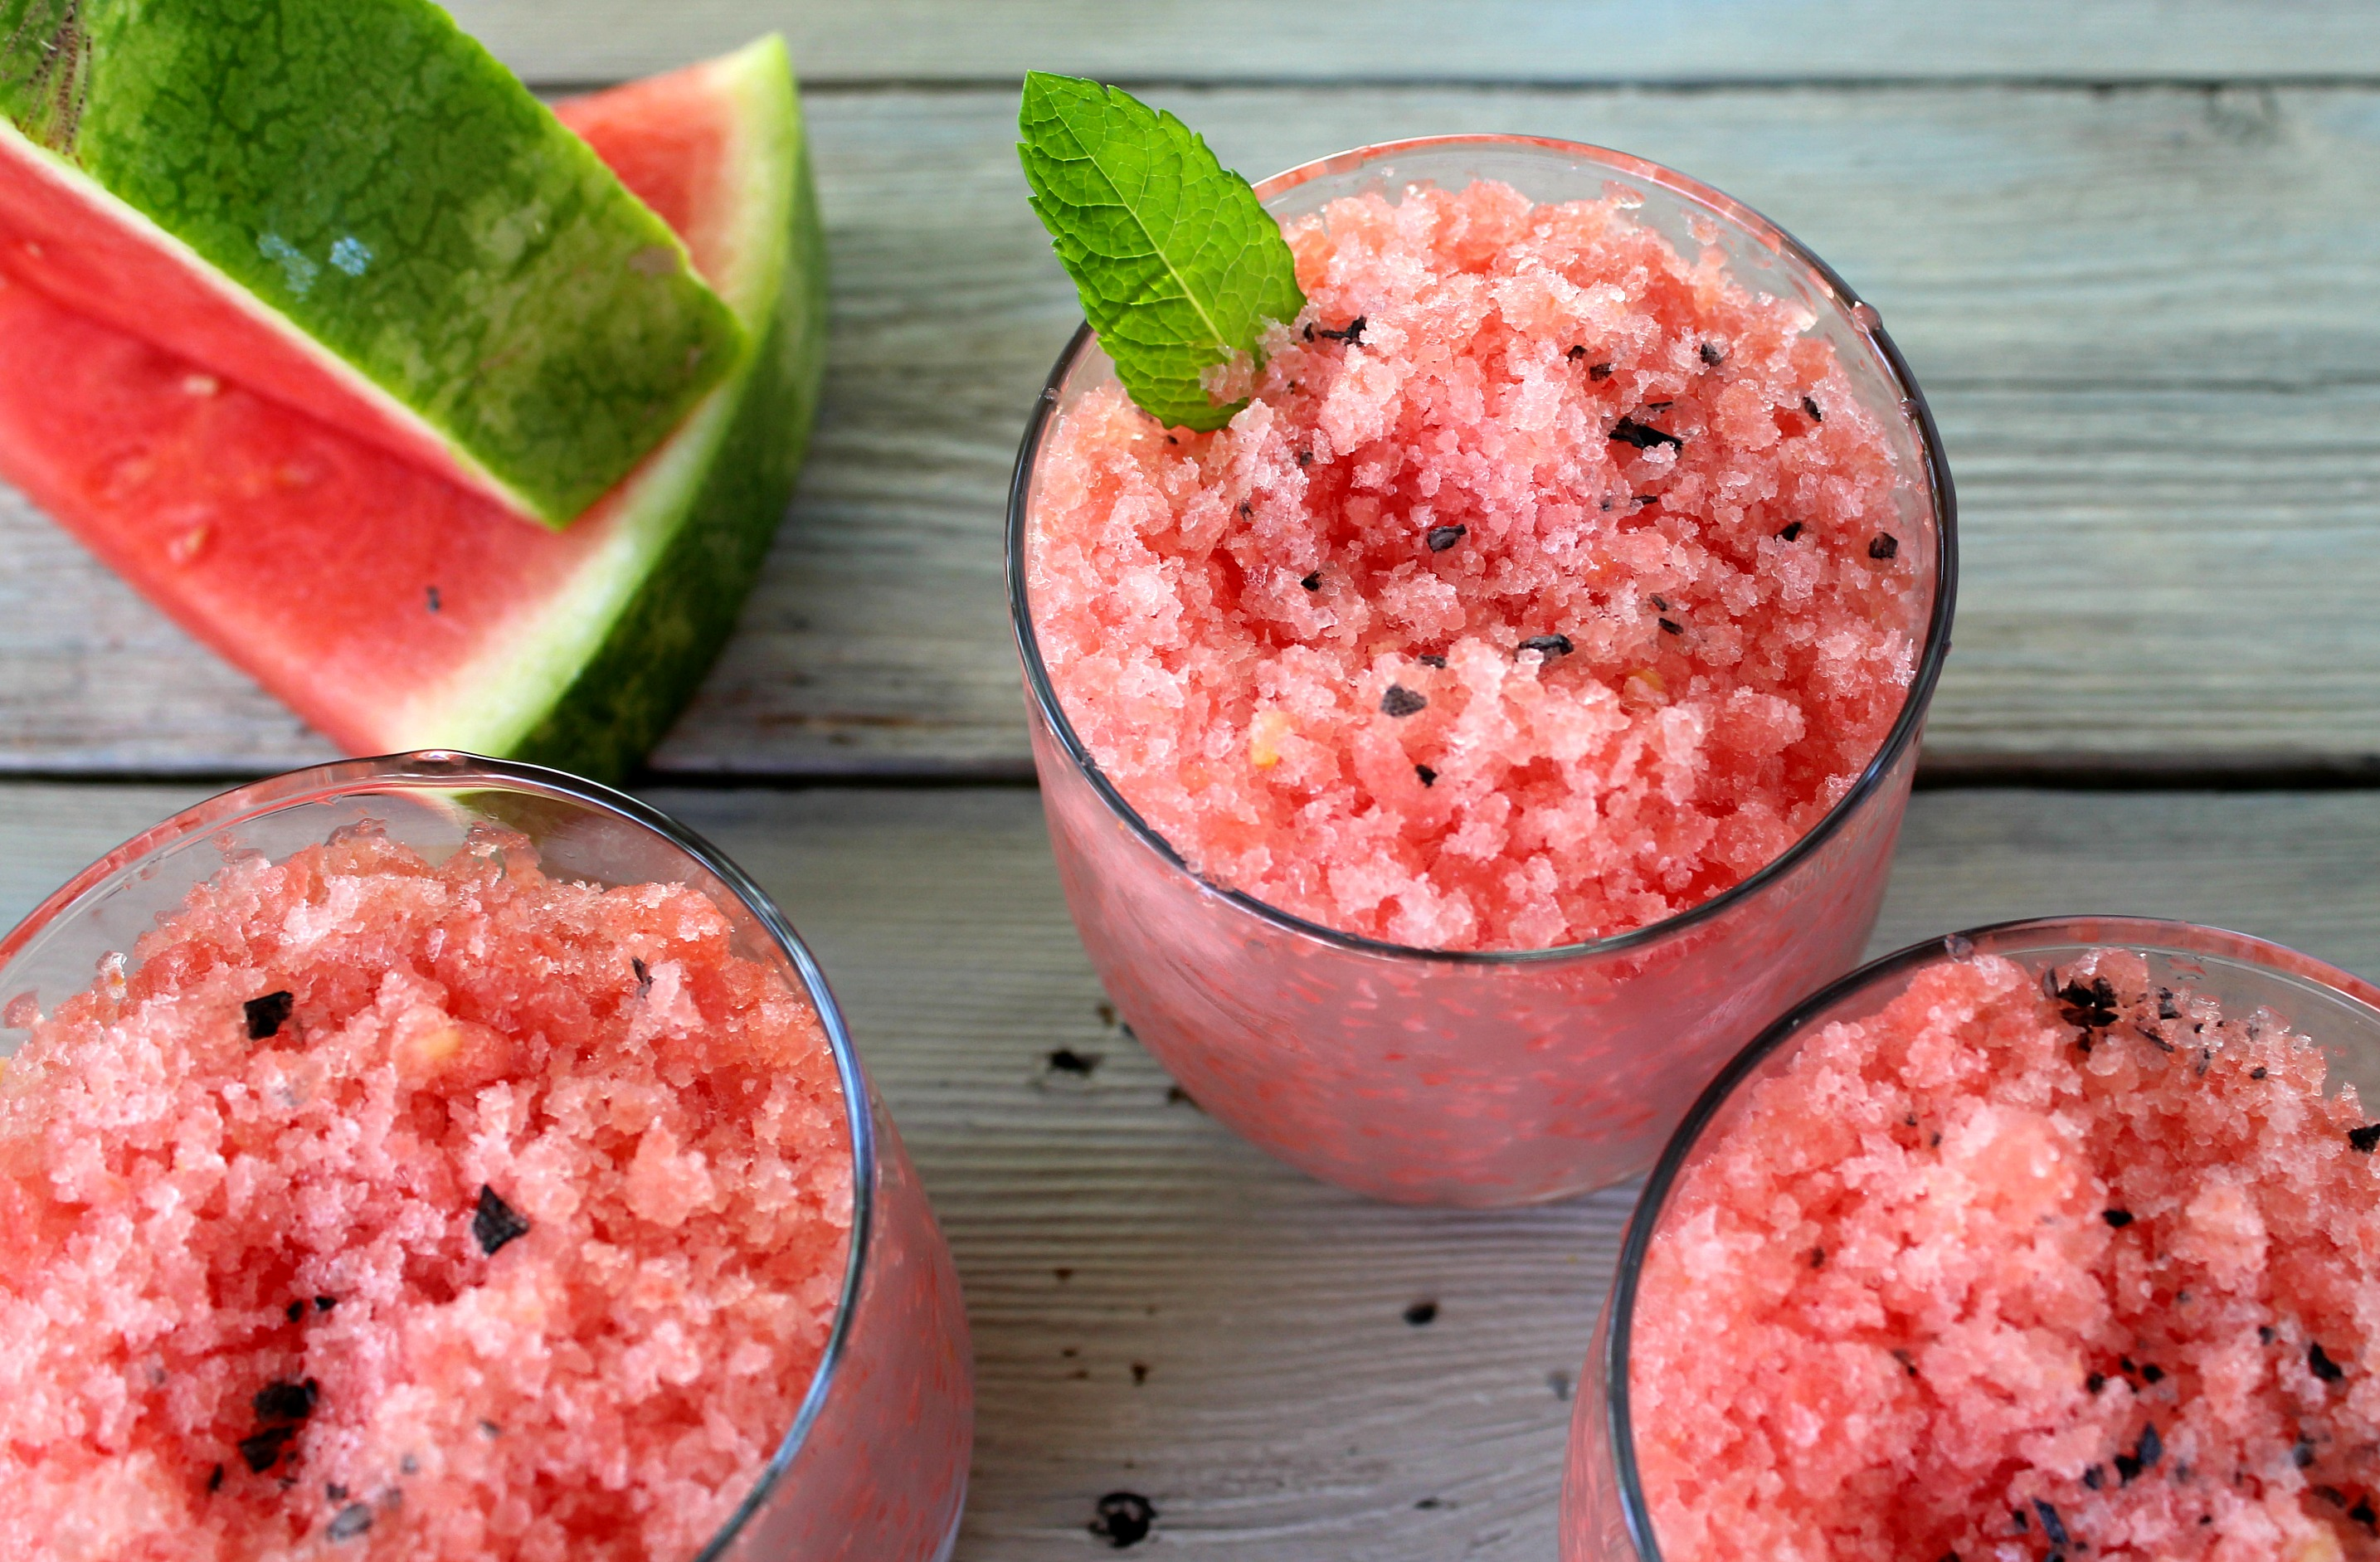 Watermelon Granita with Black Lava Salt is a simple addition to any barbecue or summer party. Easy to make, just a few hours in the freezer.